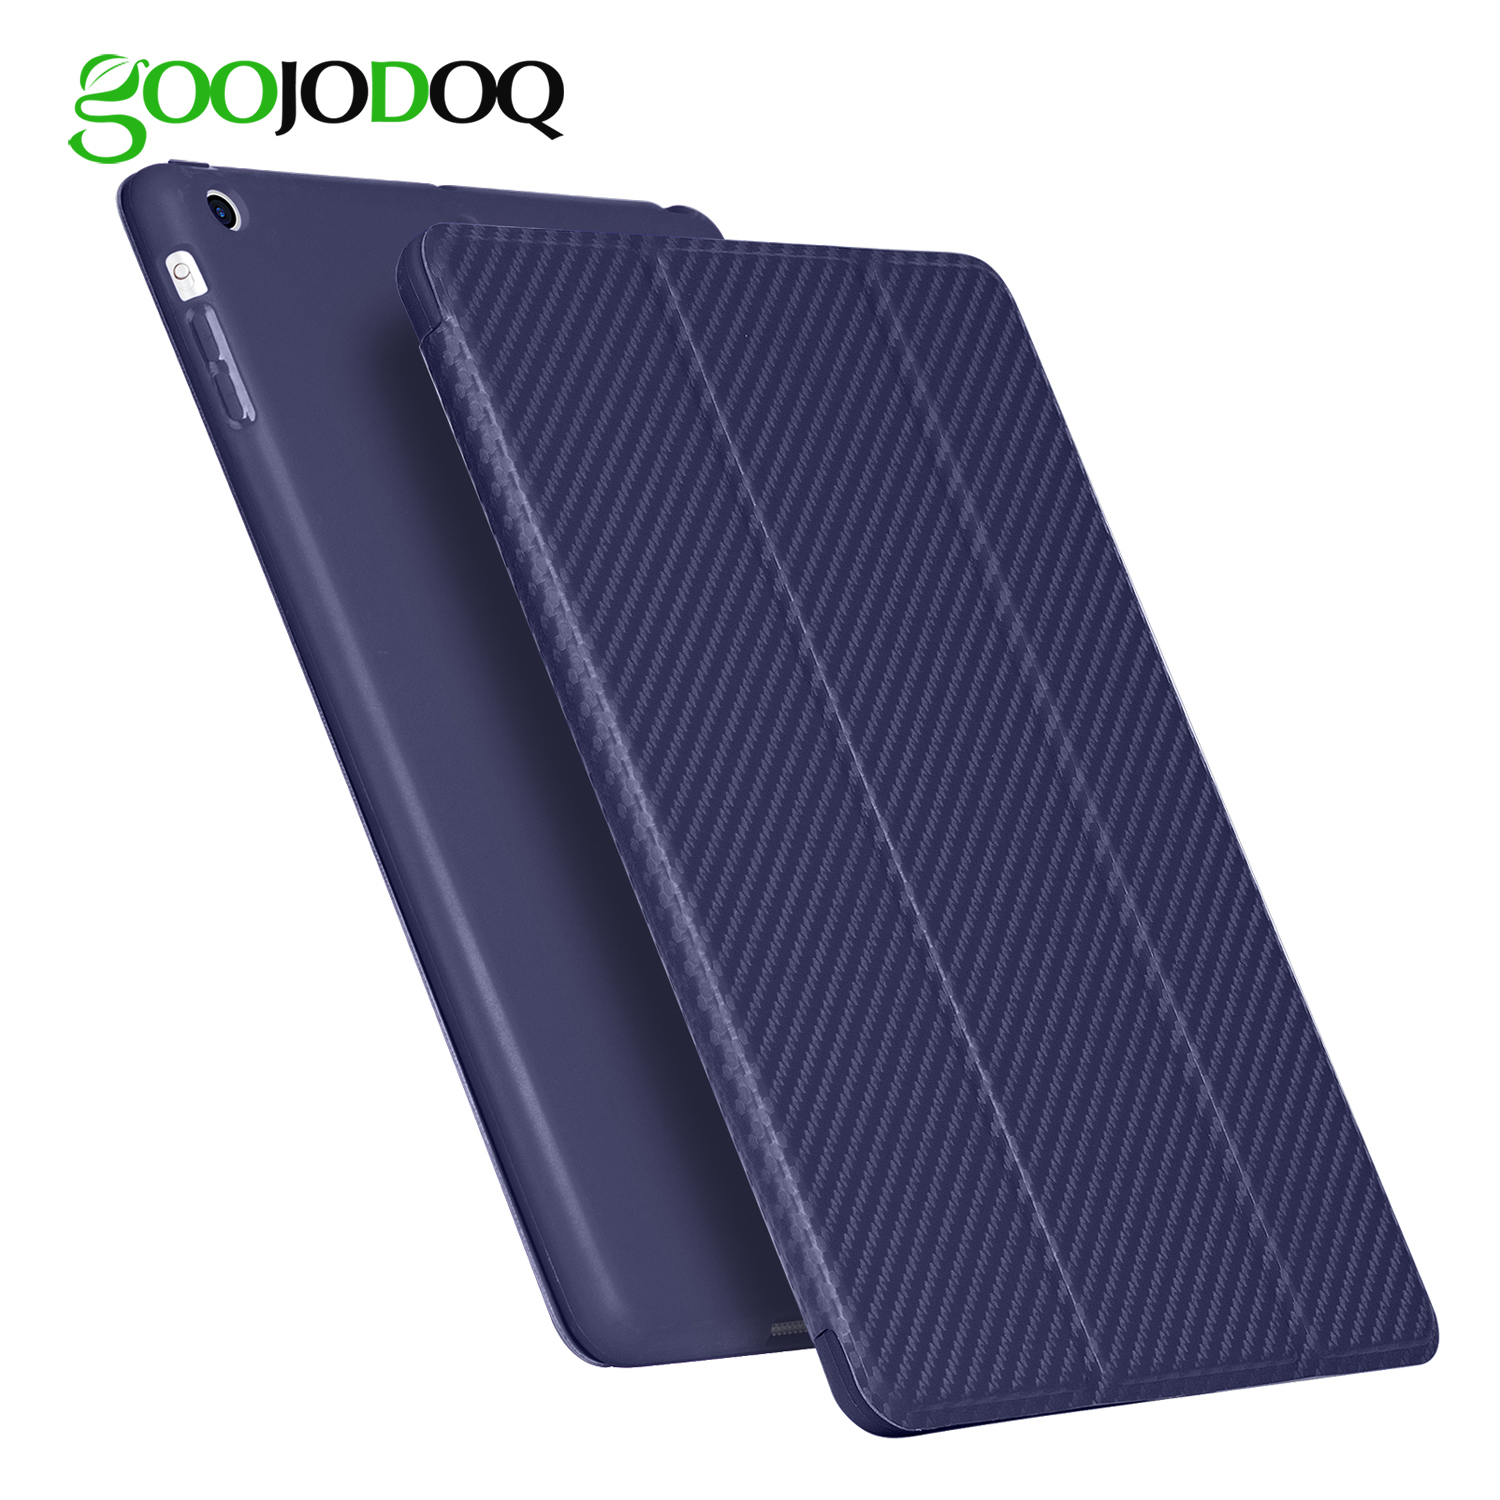 все цены на Case for iPad Air 2, GOOJODOQ Silicone Back Case for Apple iPad Air 2 iPad 6 PU Leather Smart Cover A1566 A1567 Auto Sleep/Wake